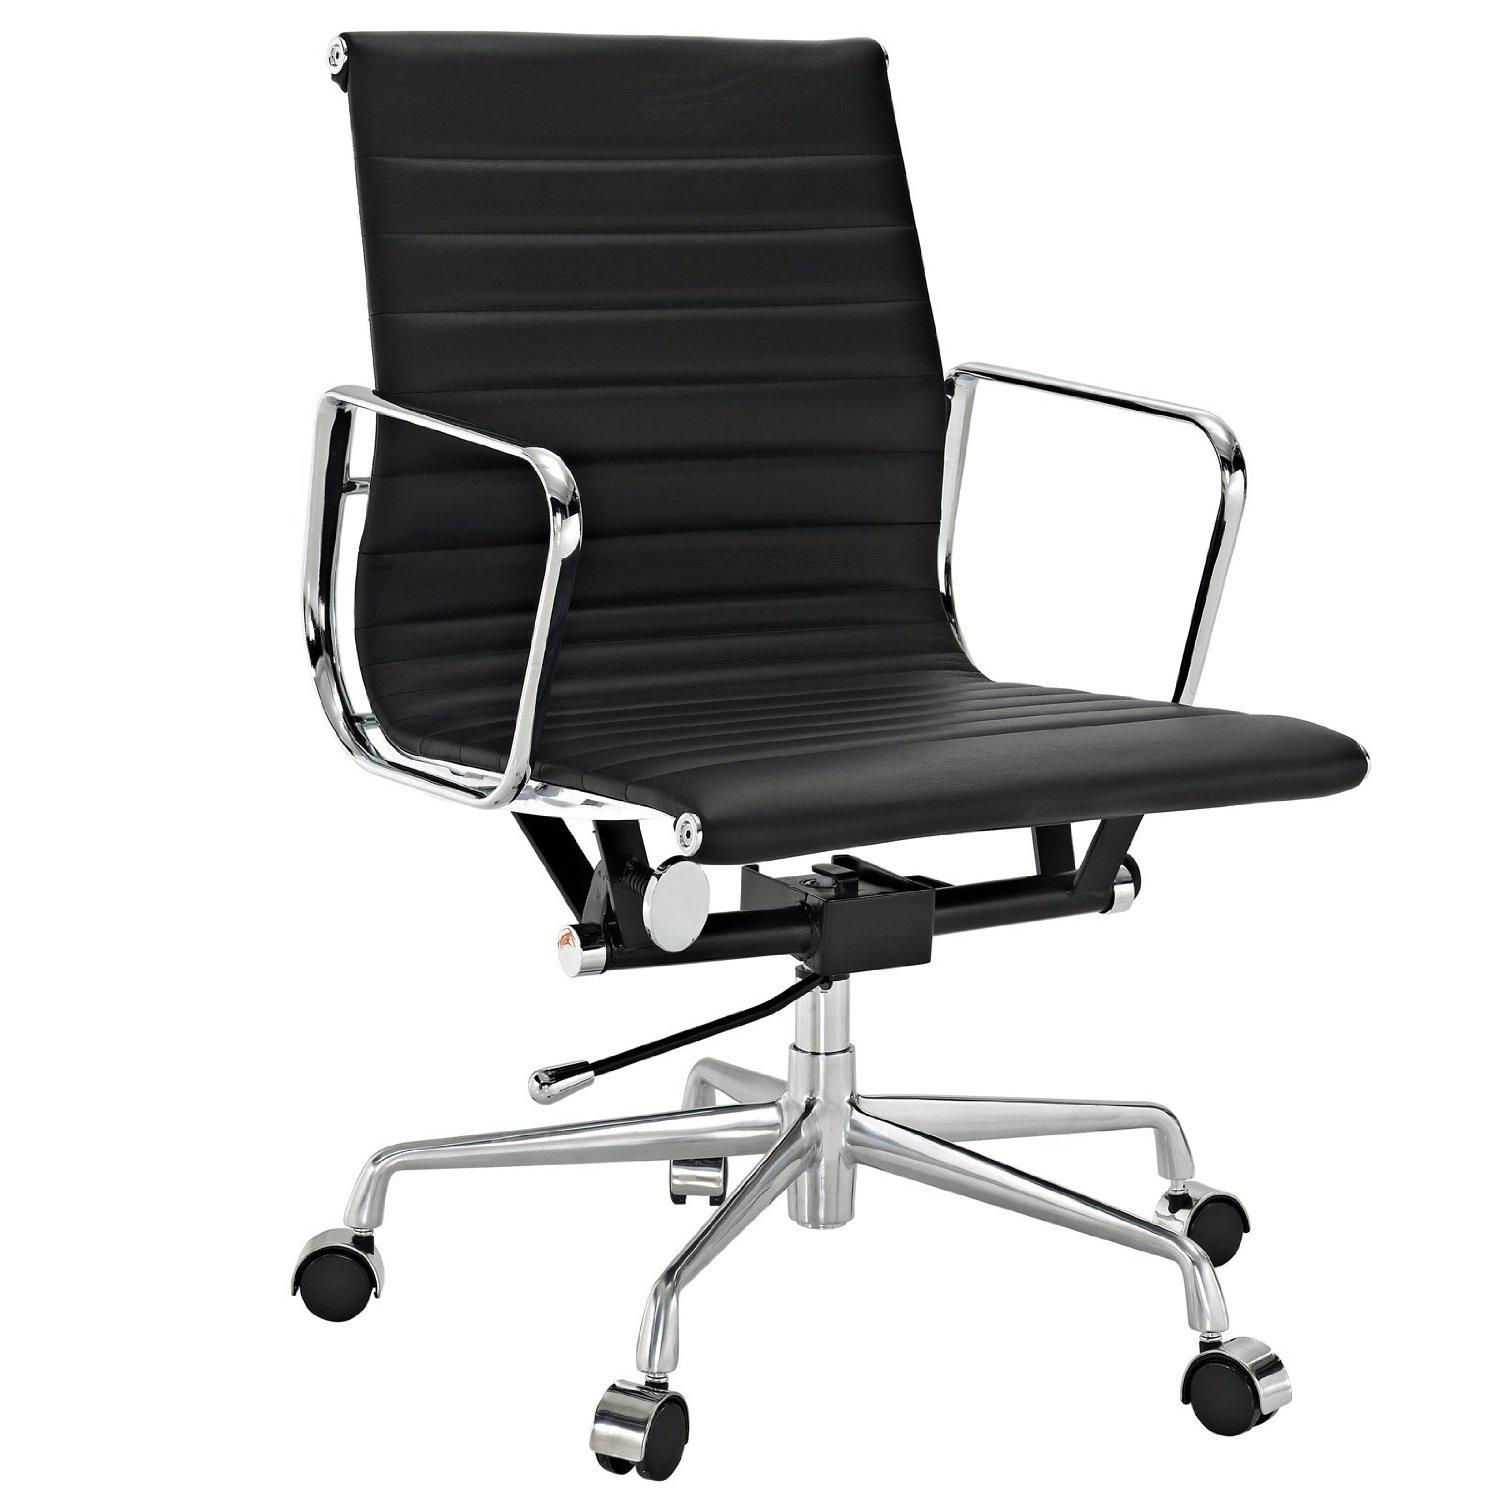 Modern Office Chair - View larger